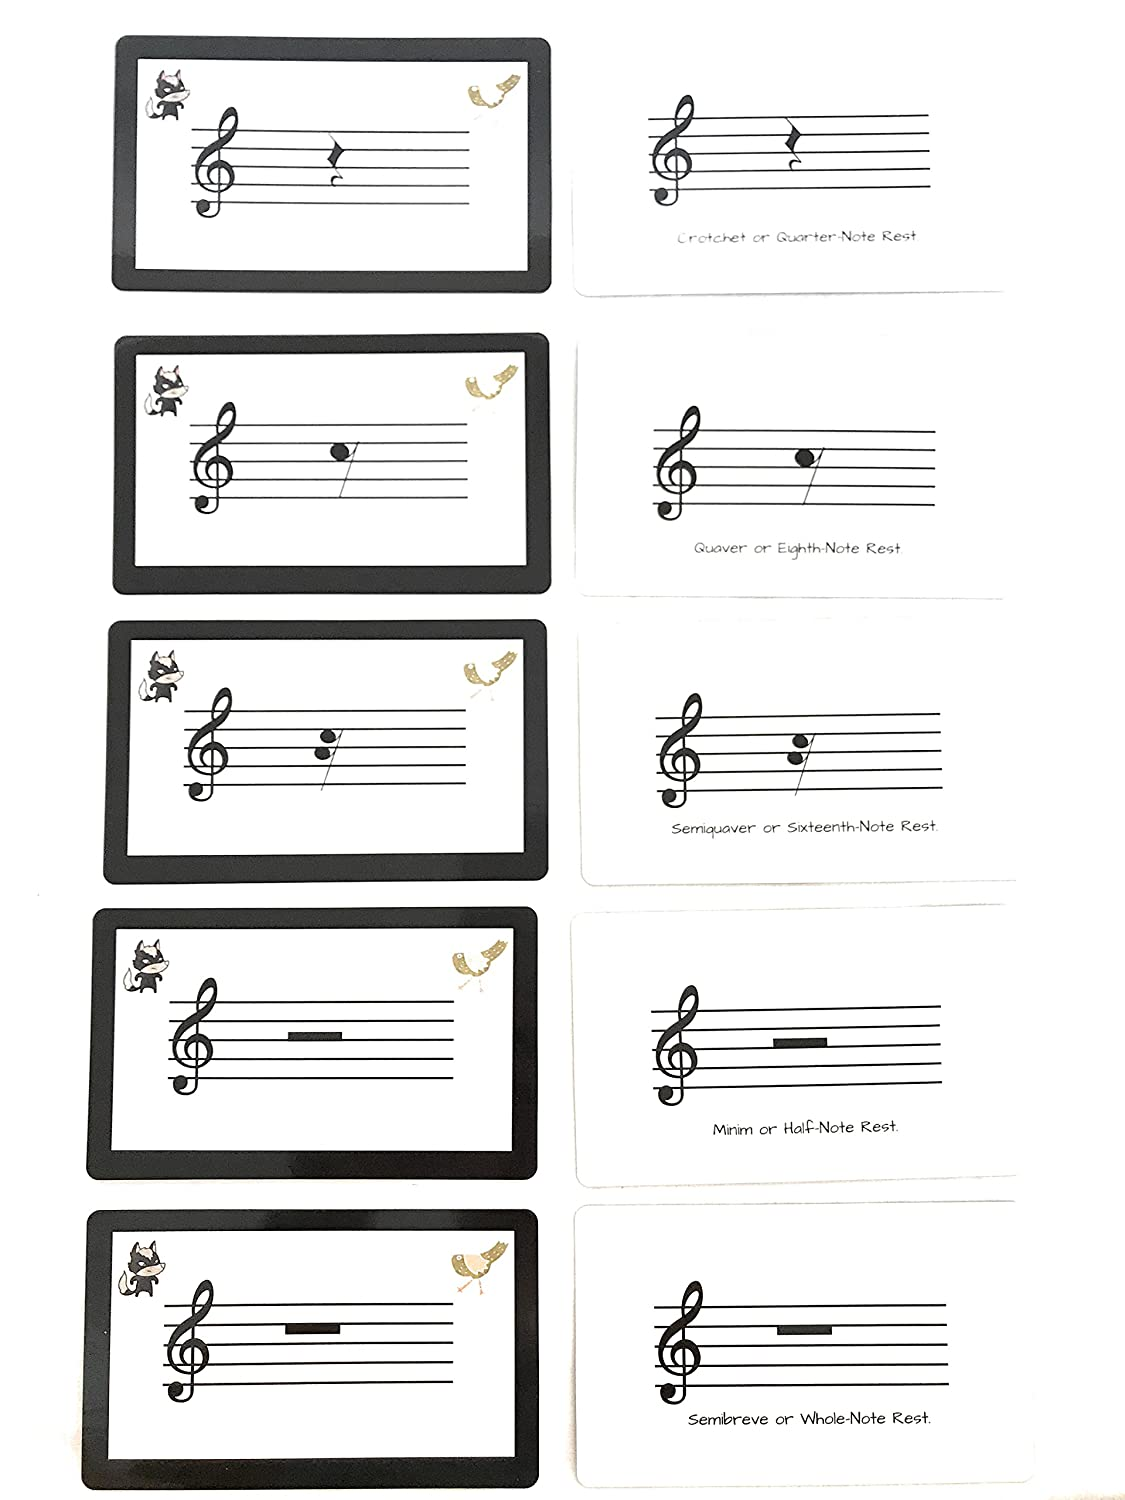 image about Piano Note Flashcards Printable named Tunes Flash Playing cards for Piano, 46 Enormous Dimensions (13cm x 8cm) Songs Flashcards United kingdom and United states of america terminology, Train your small children in the direction of examine new music, Study in direction of study audio